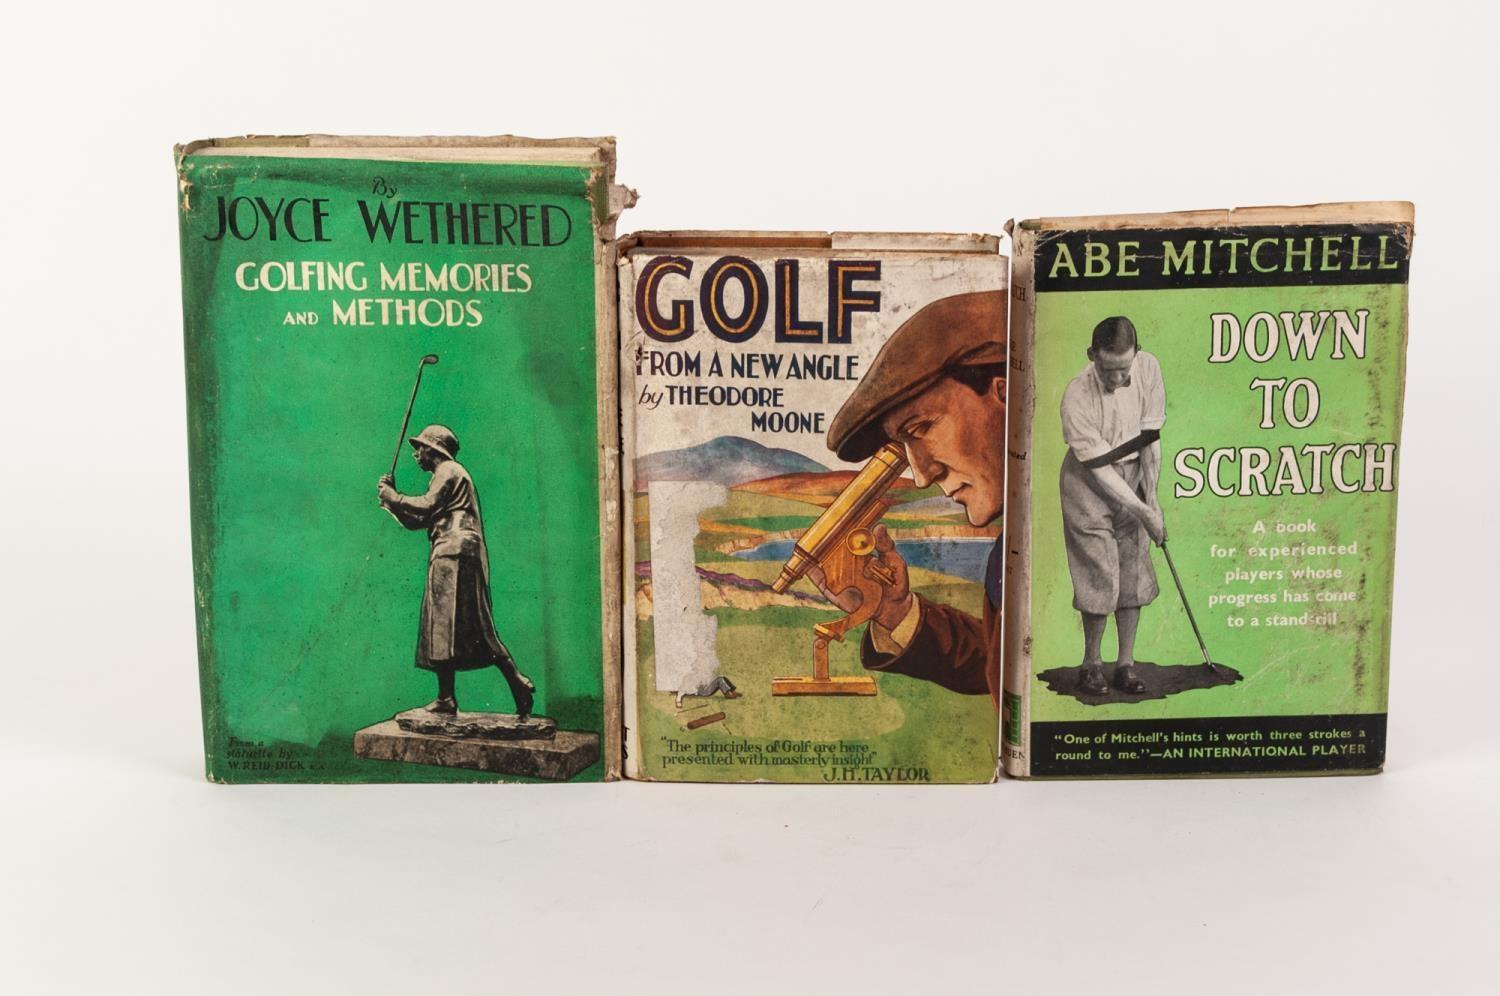 Lot 63 - GOLF- Abe Mitchell- Down to Scratch, pub Methuen 1933, 1st Edition review copy with dj. Joyce